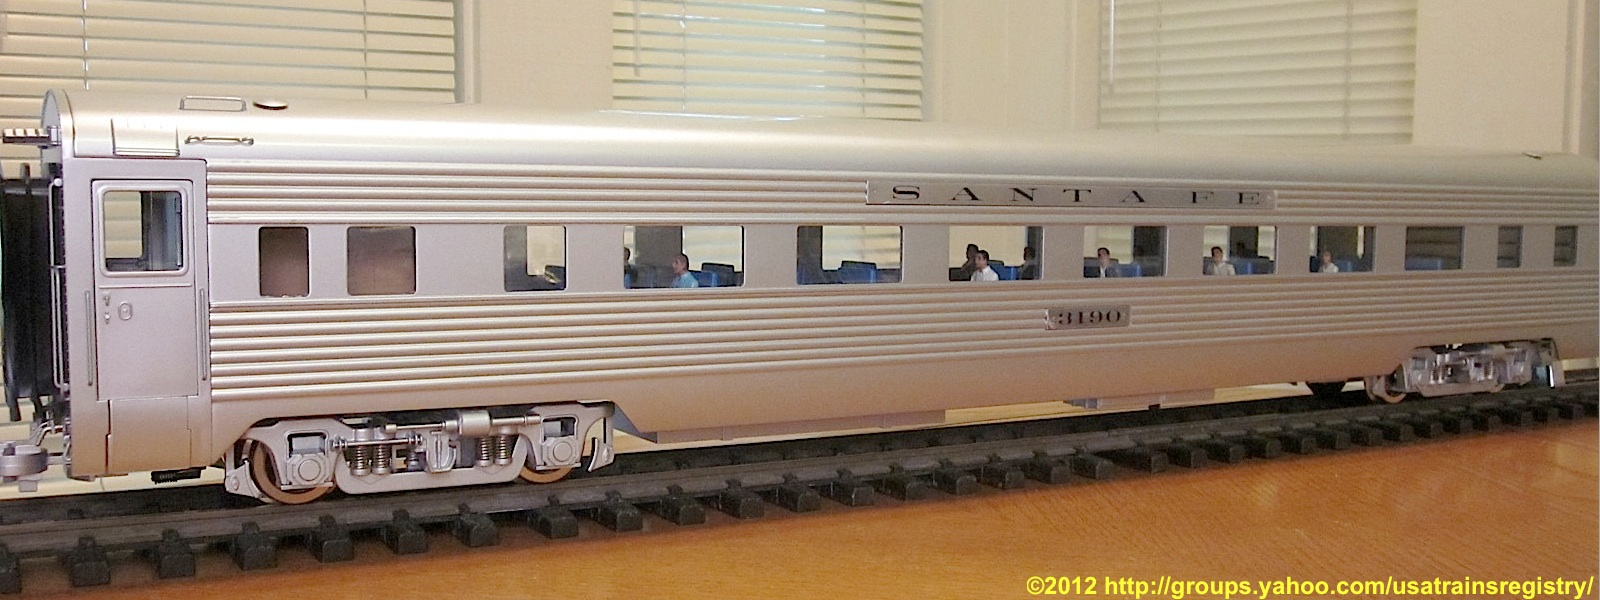 Santa Fe Super Chief - Personenwagen (Passenger car) - 3190